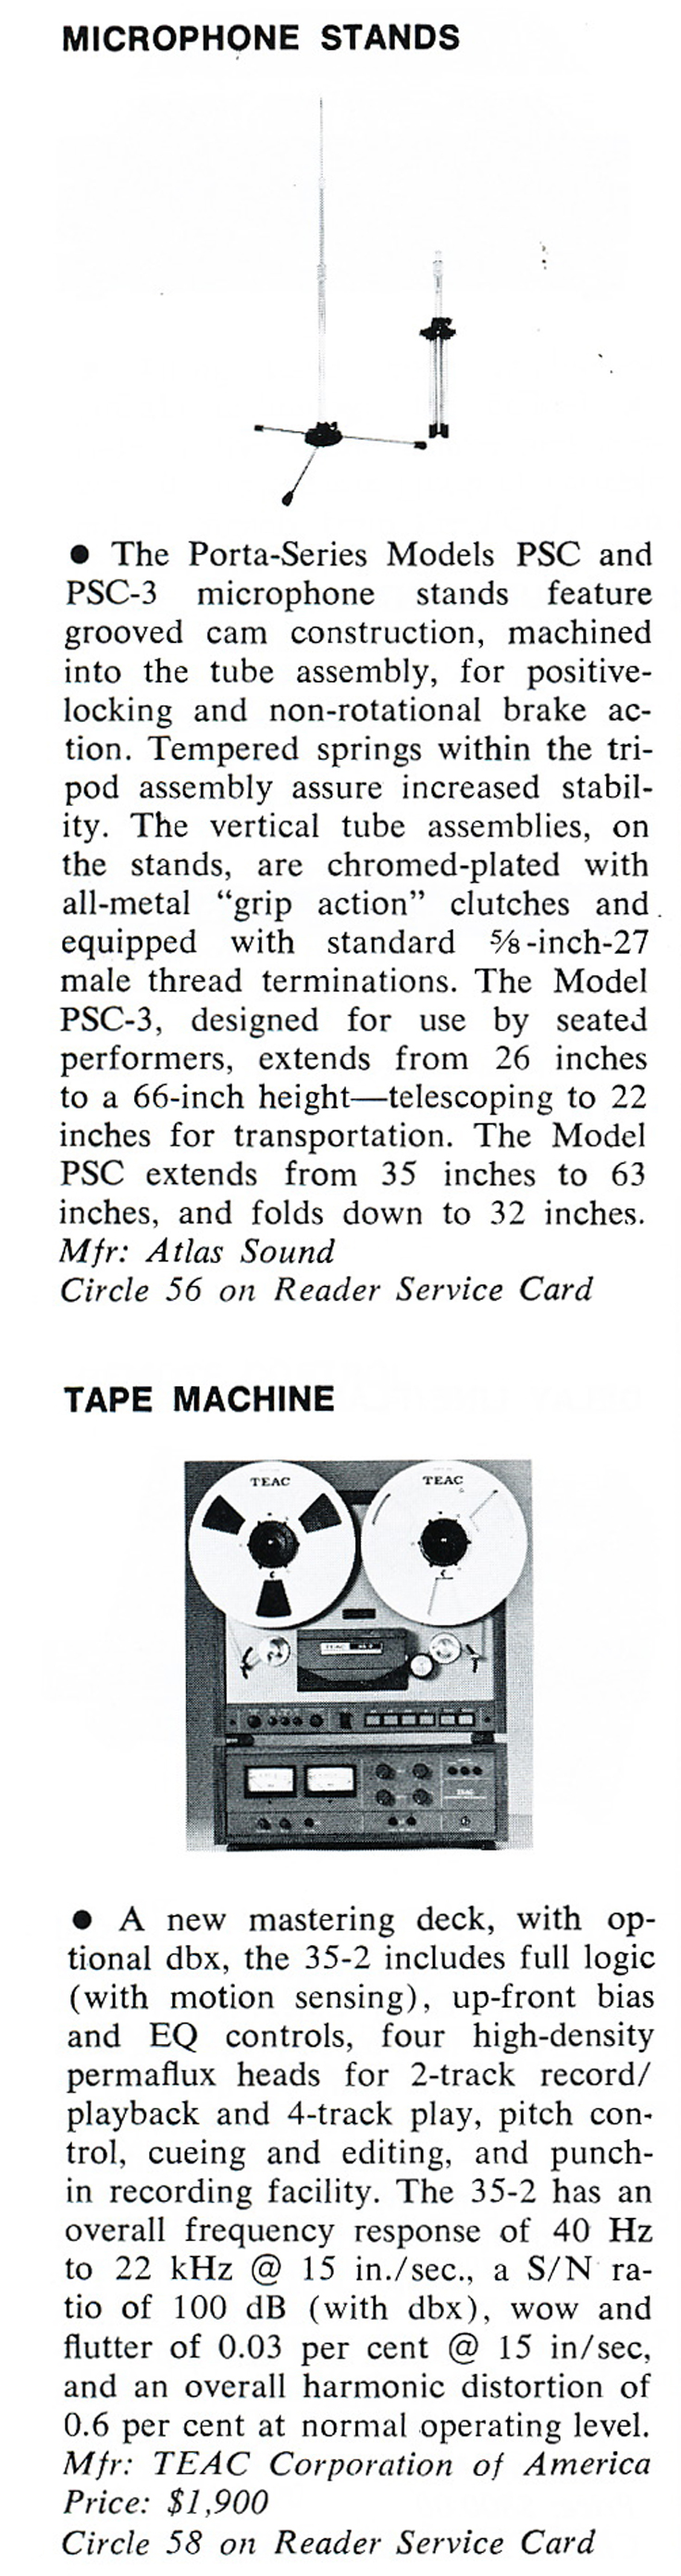 1979 review of Atlas' Porta Stands and the Teac 35-2 2 track mastering reel to reel tape recorder in Reel2ReelTexas.com's vintage recording collection